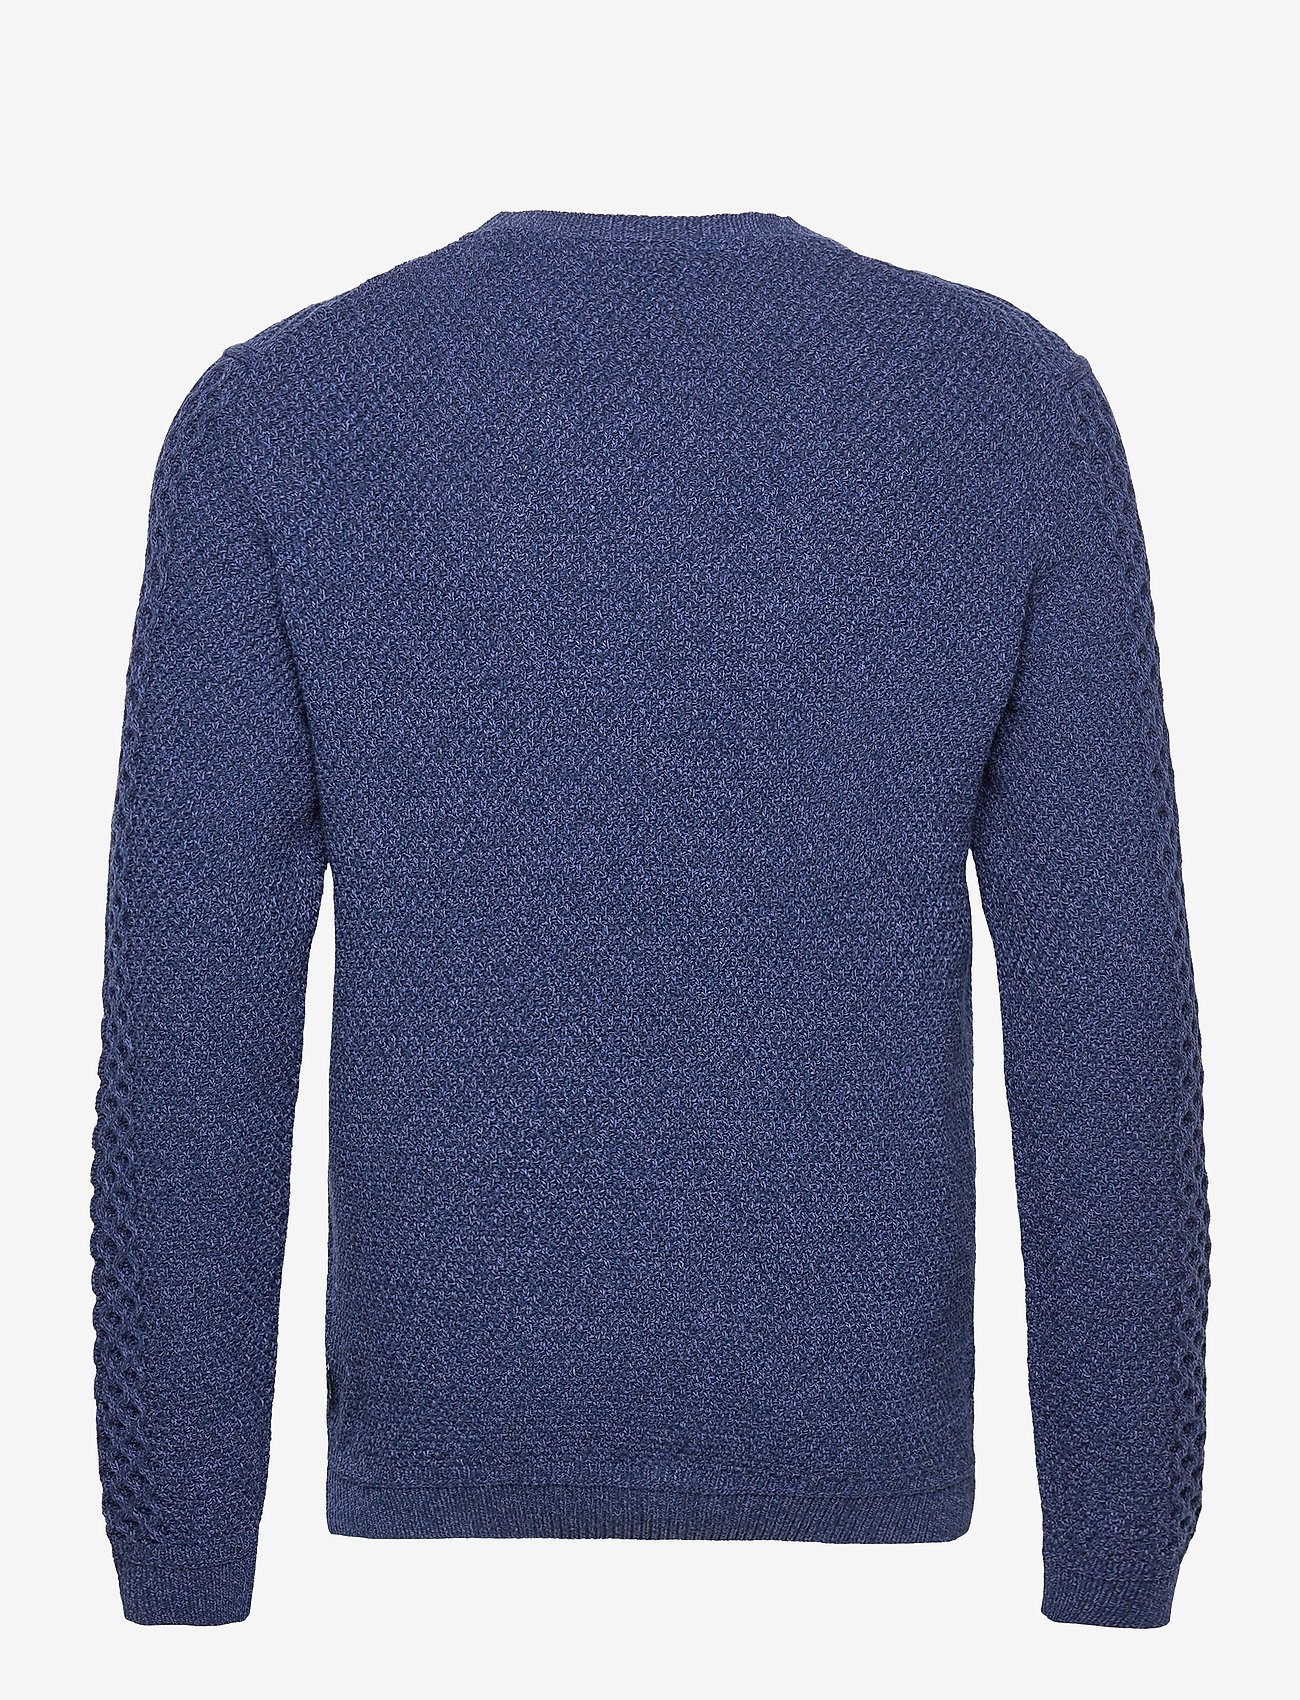 Esprit Casual - Sweaters - tricots basiques - ink 5 - 1